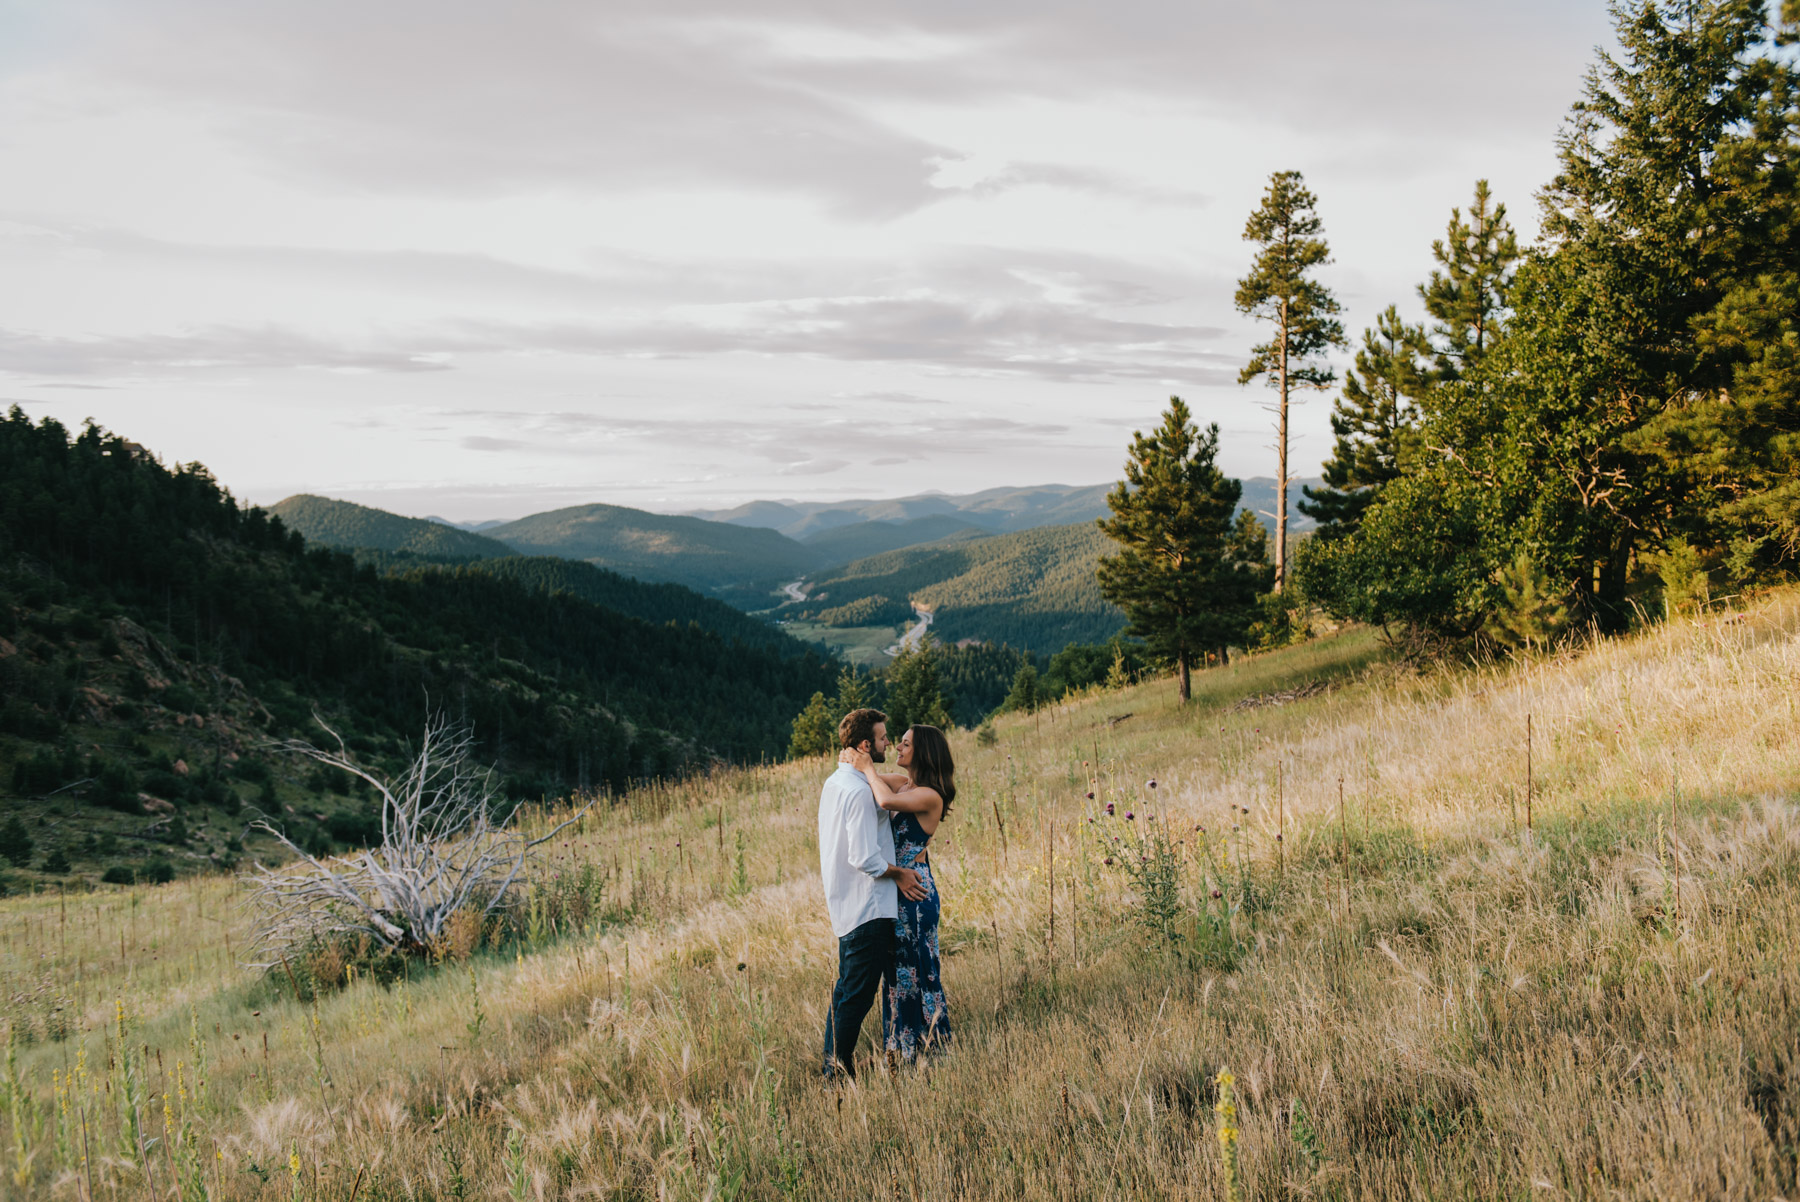 Nicole and Jamie during their Mount Falcon engagement session. We had a blast hiking around for their mountain adventure session. Mount Falcon is 35 minutes from Denver, so its a great spot for an outdoor engagement session in Colorado!